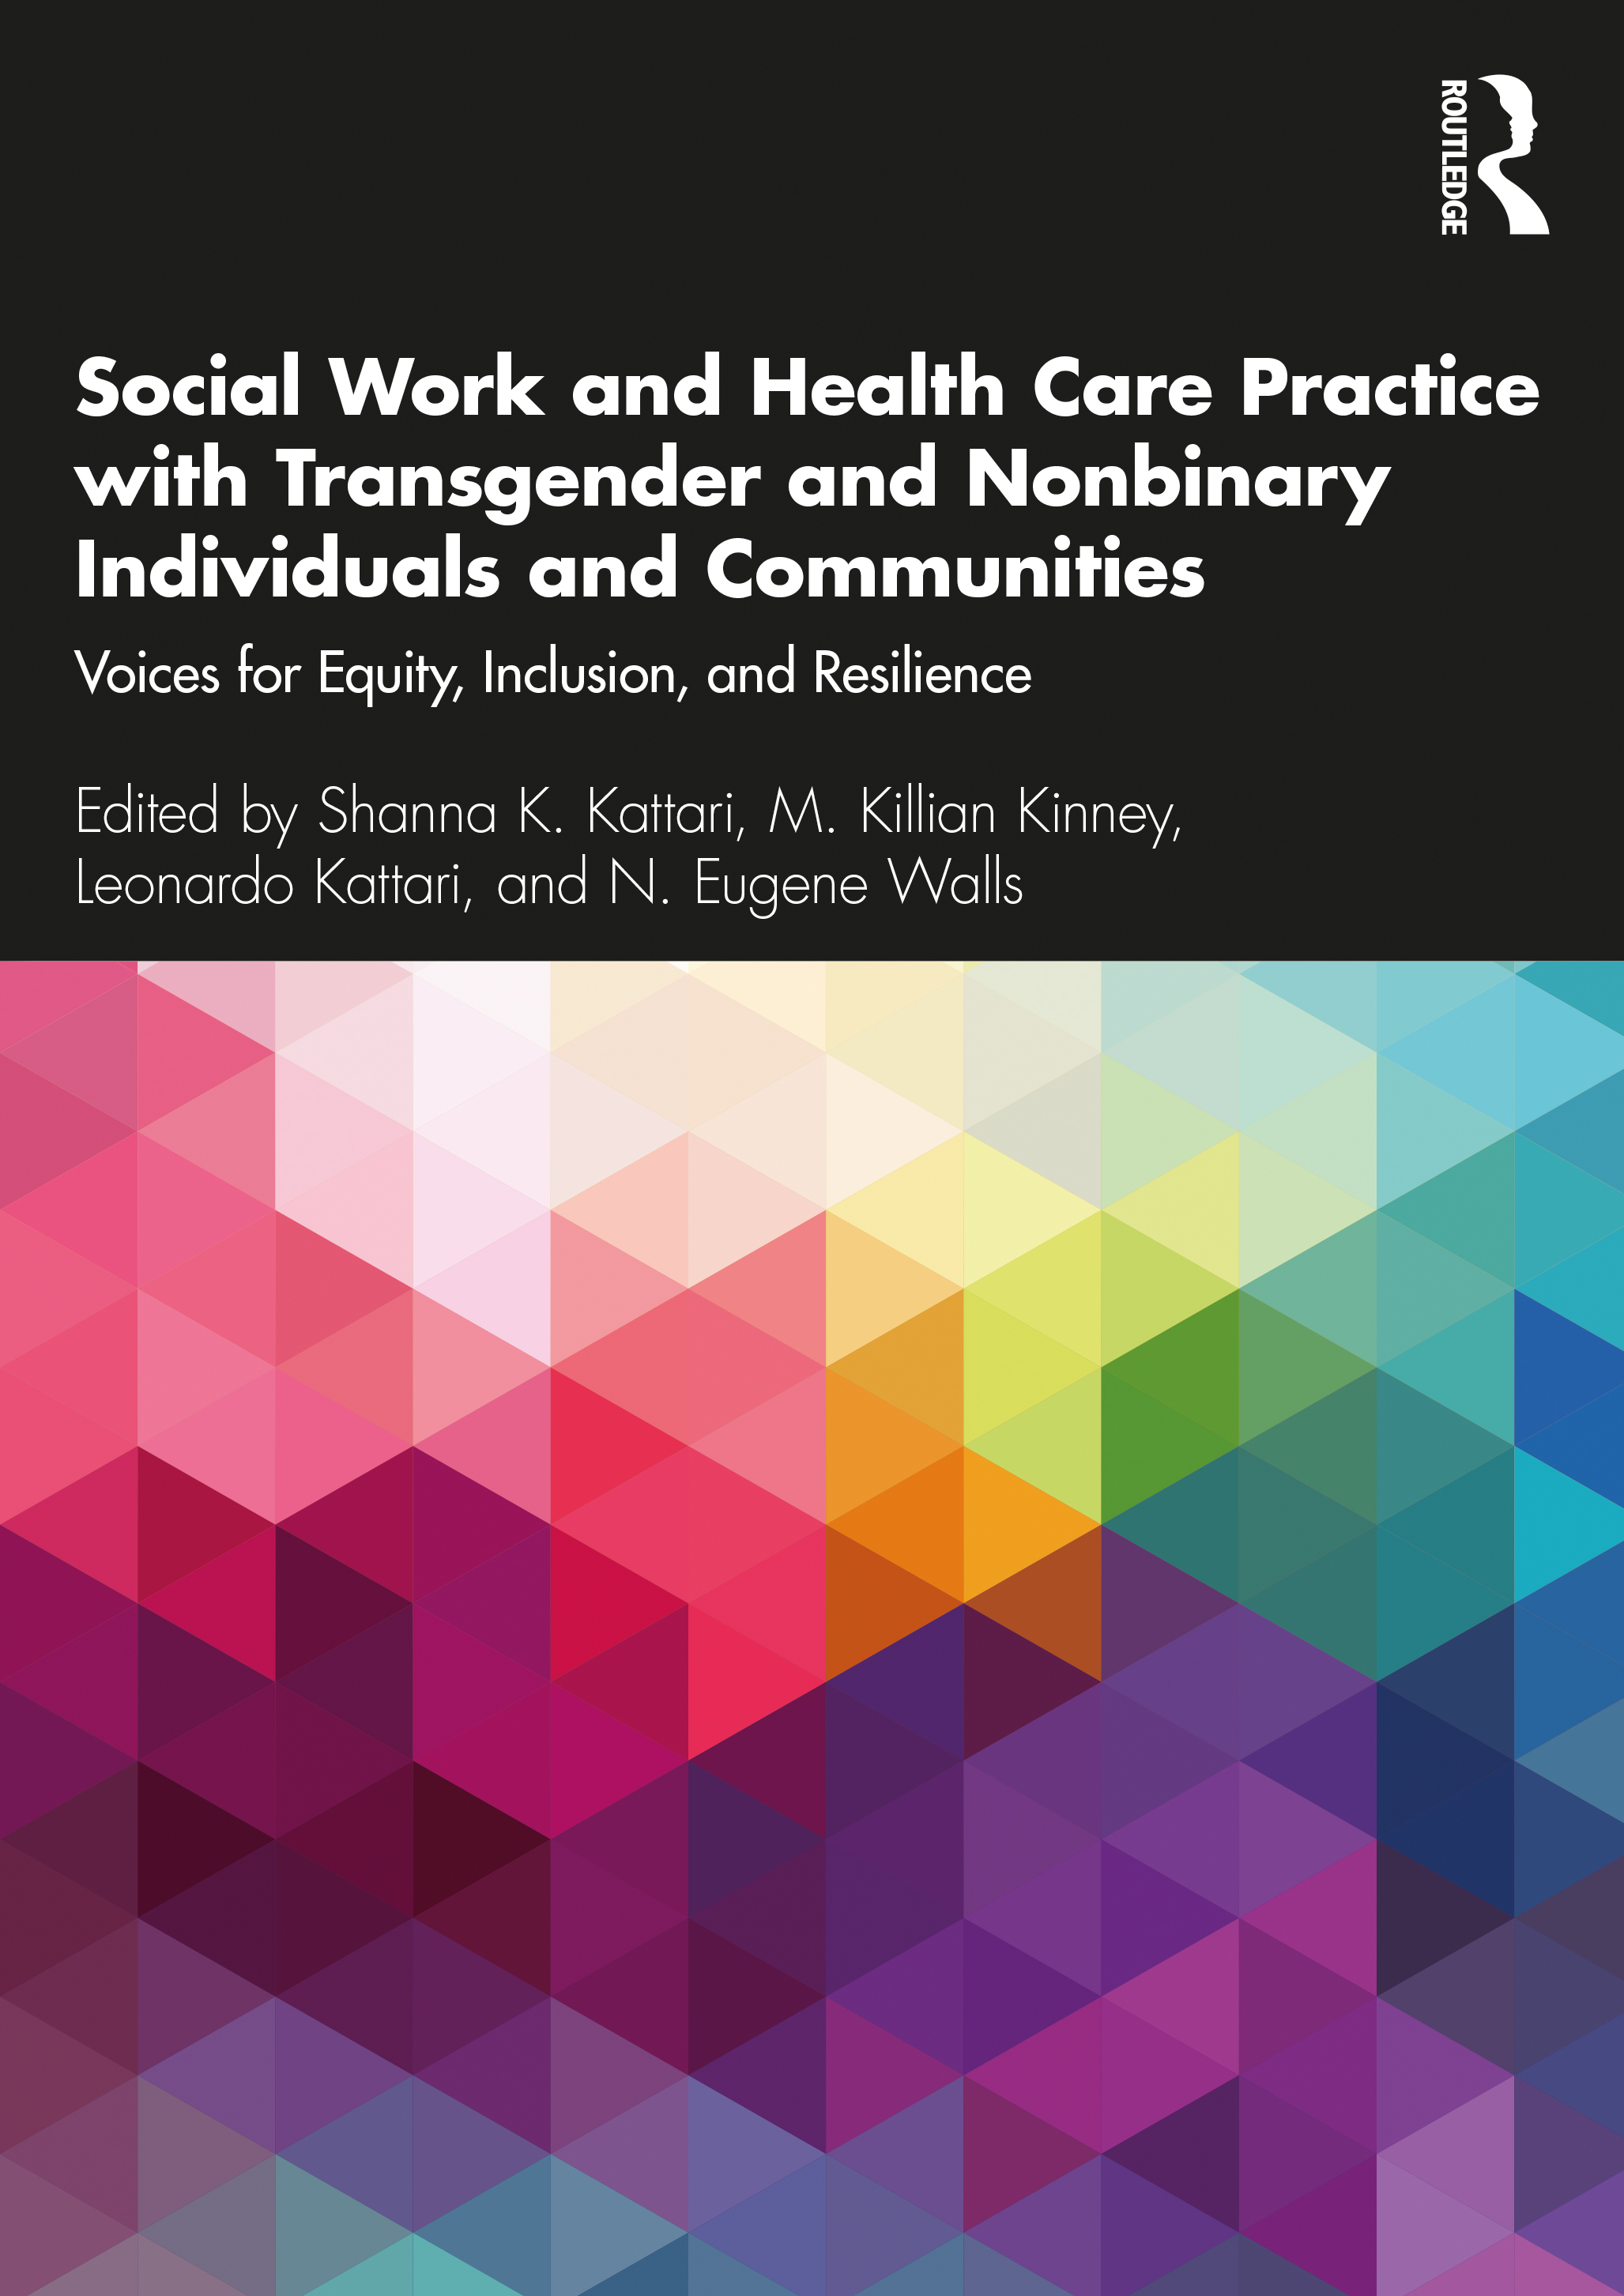 Social Work and Health Care Practice with Transgender and Nonbinary Individuals and Communities: Voices for Equity, Inclusion, and Resilience book cover